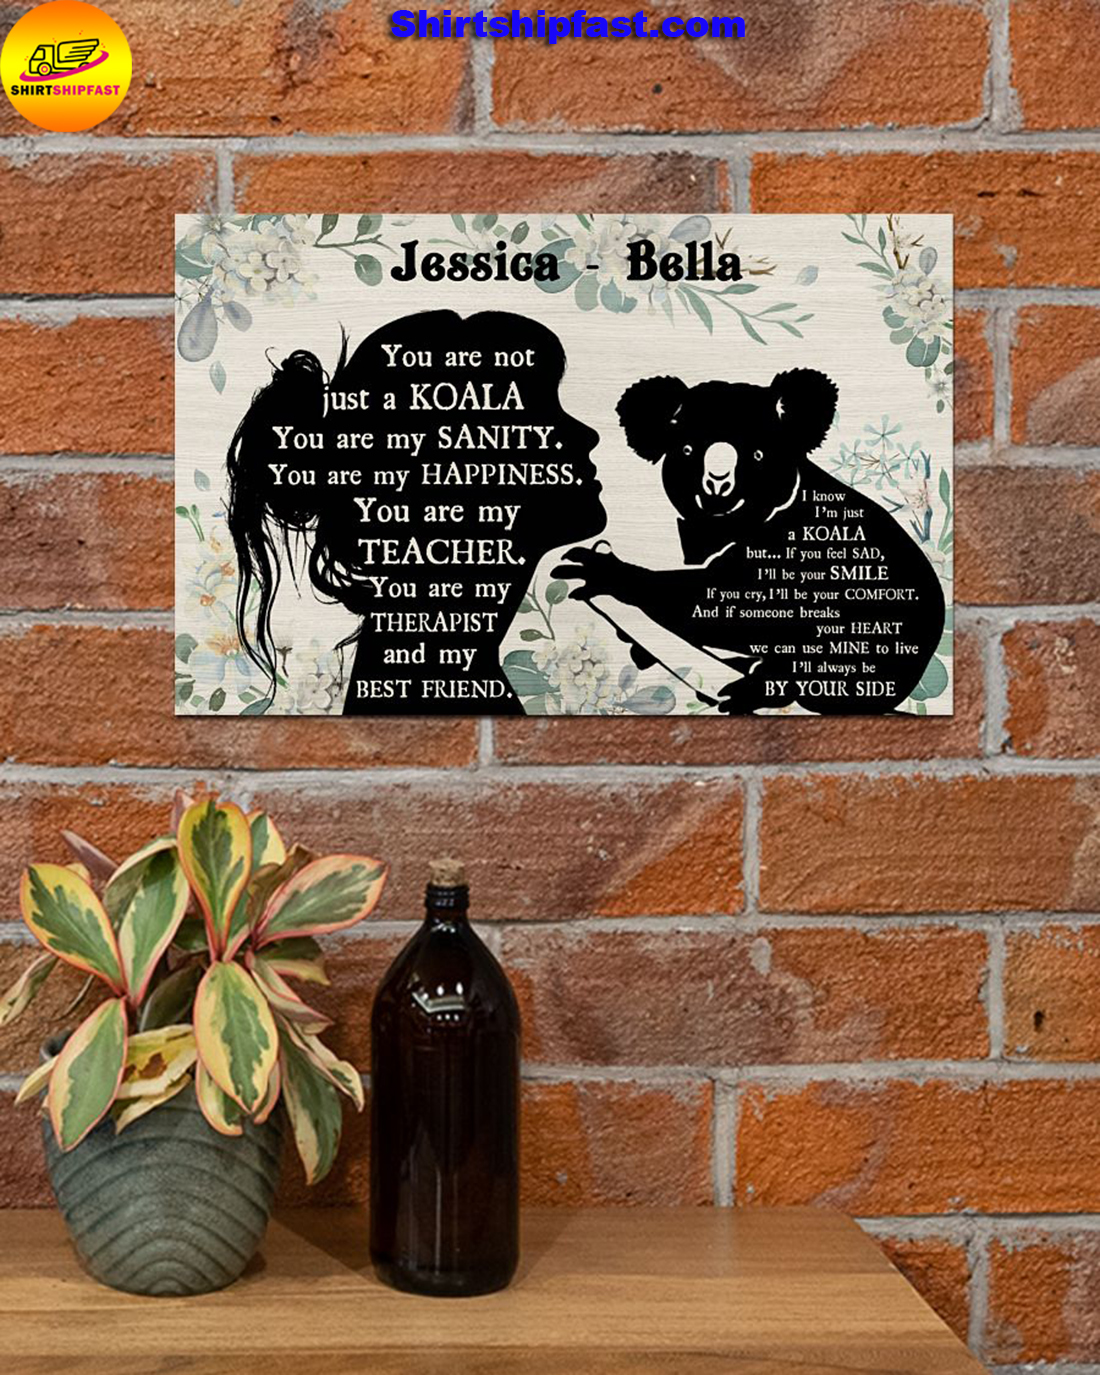 You are not just a koala personalized koala lover poster - Picture 2